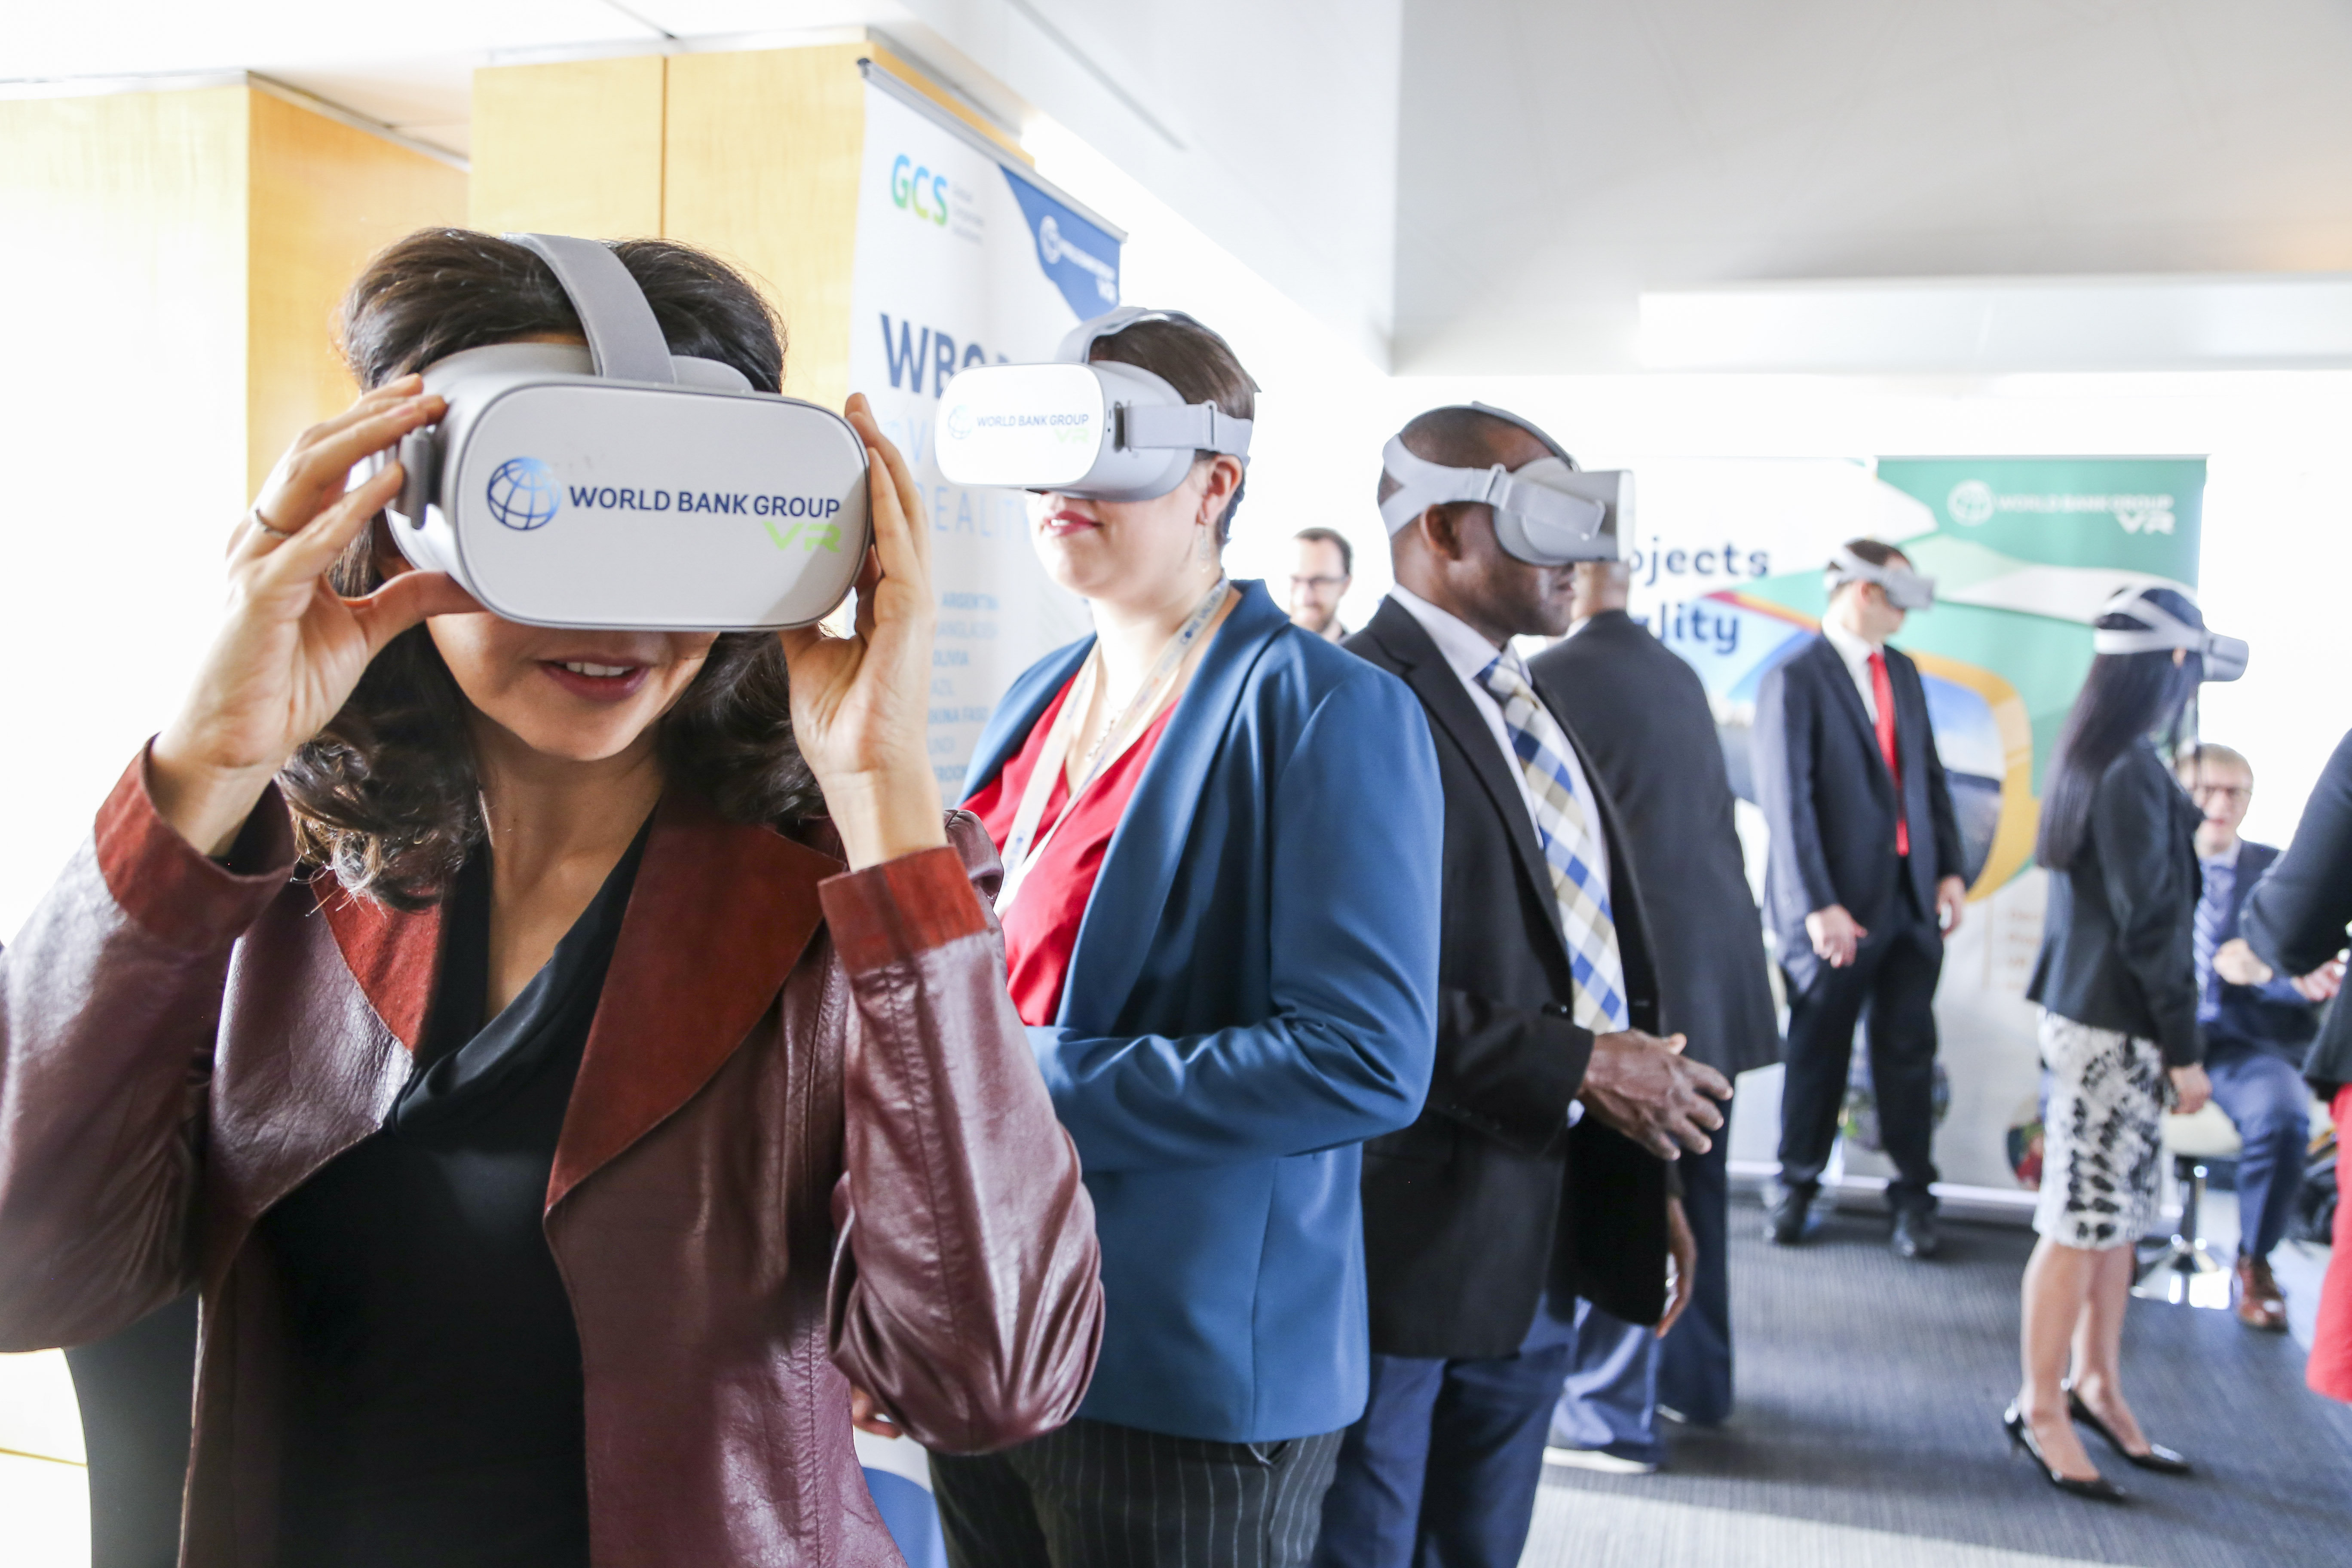 World Bank innovation with AR and VR technologies.